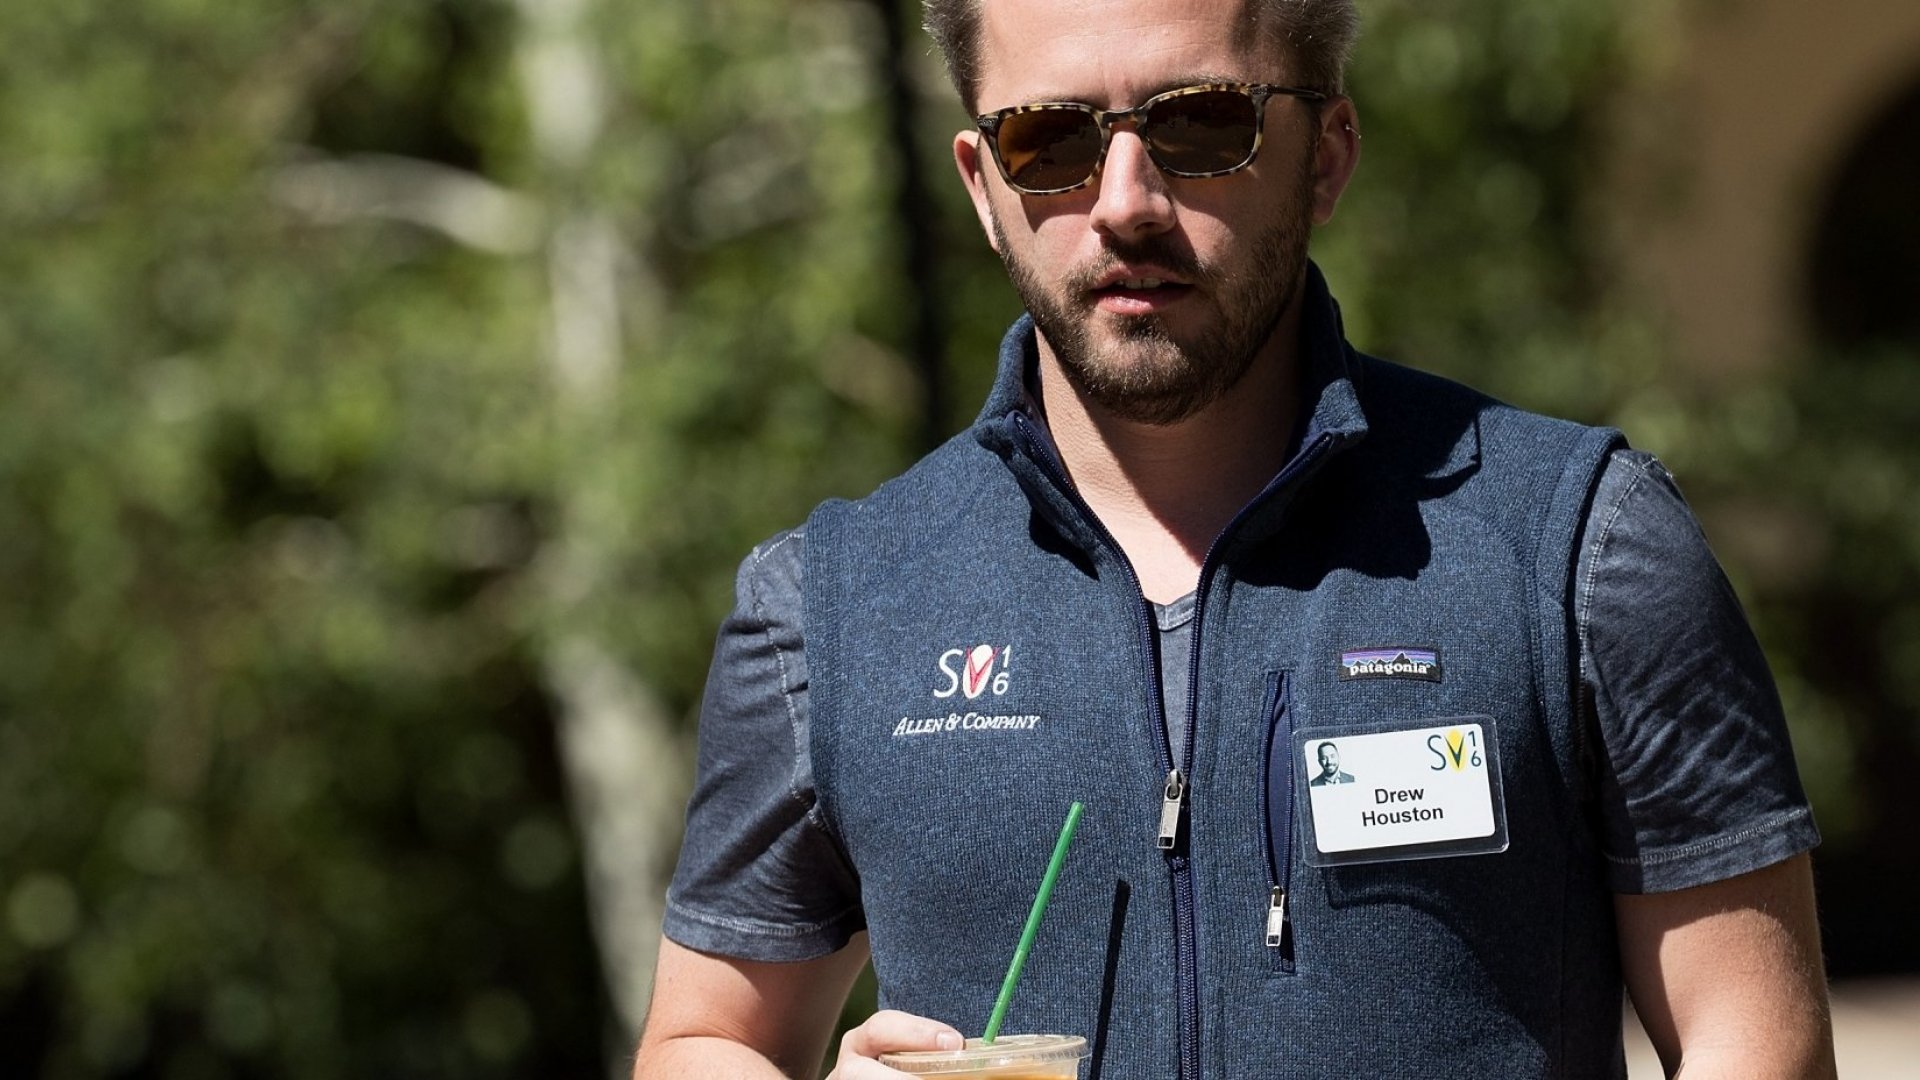 Drew Houston, chief executive officer of Dropbox, attends the annual Allen & Company Sun Valley Conference, July 7, 2016 in Sun Valley, Idaho. Every July, some of the world's most wealthy and powerful businesspeople from the media, finance, technology and political spheres converge at the Sun Valley Resort for the exclusive weeklong conference. (Photo by Drew Angerer/Getty Images)